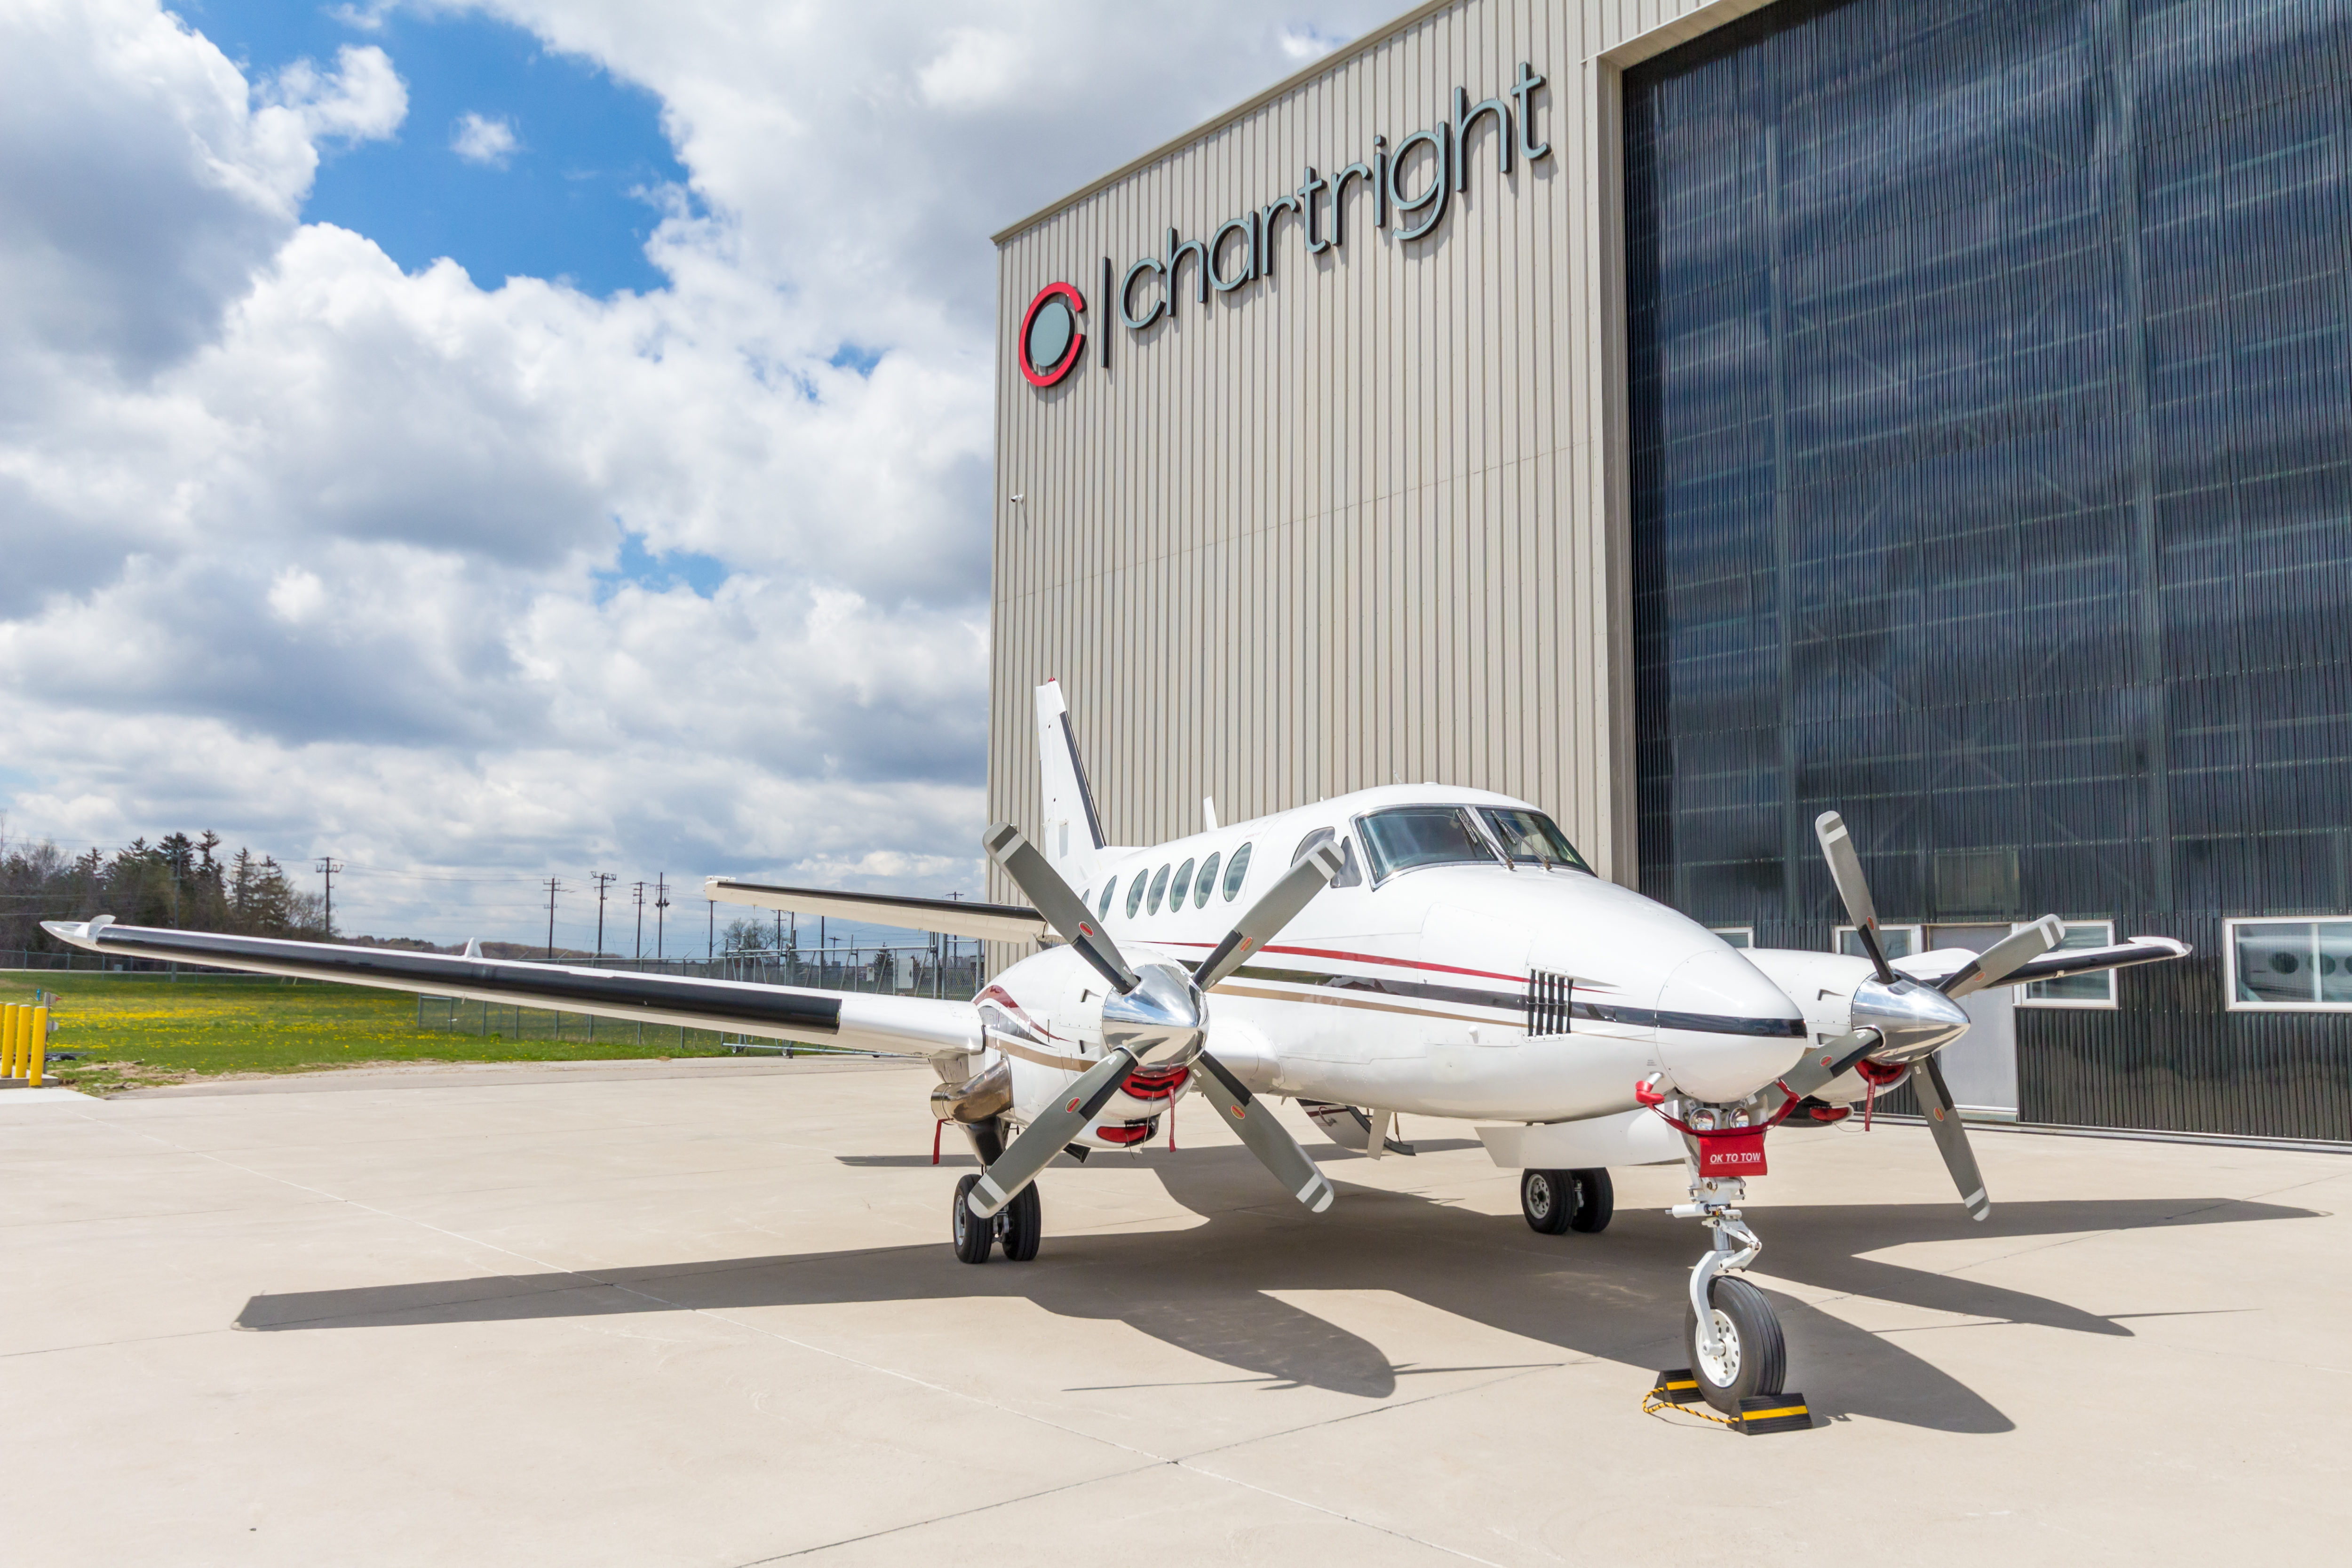 Chartright operates a 50,000-square-foot hangar and fixed based operations facility at the Region of Waterloo International Airport. Kitchener Aero will become Chartright's newest tenant at this location. Chartright Photo